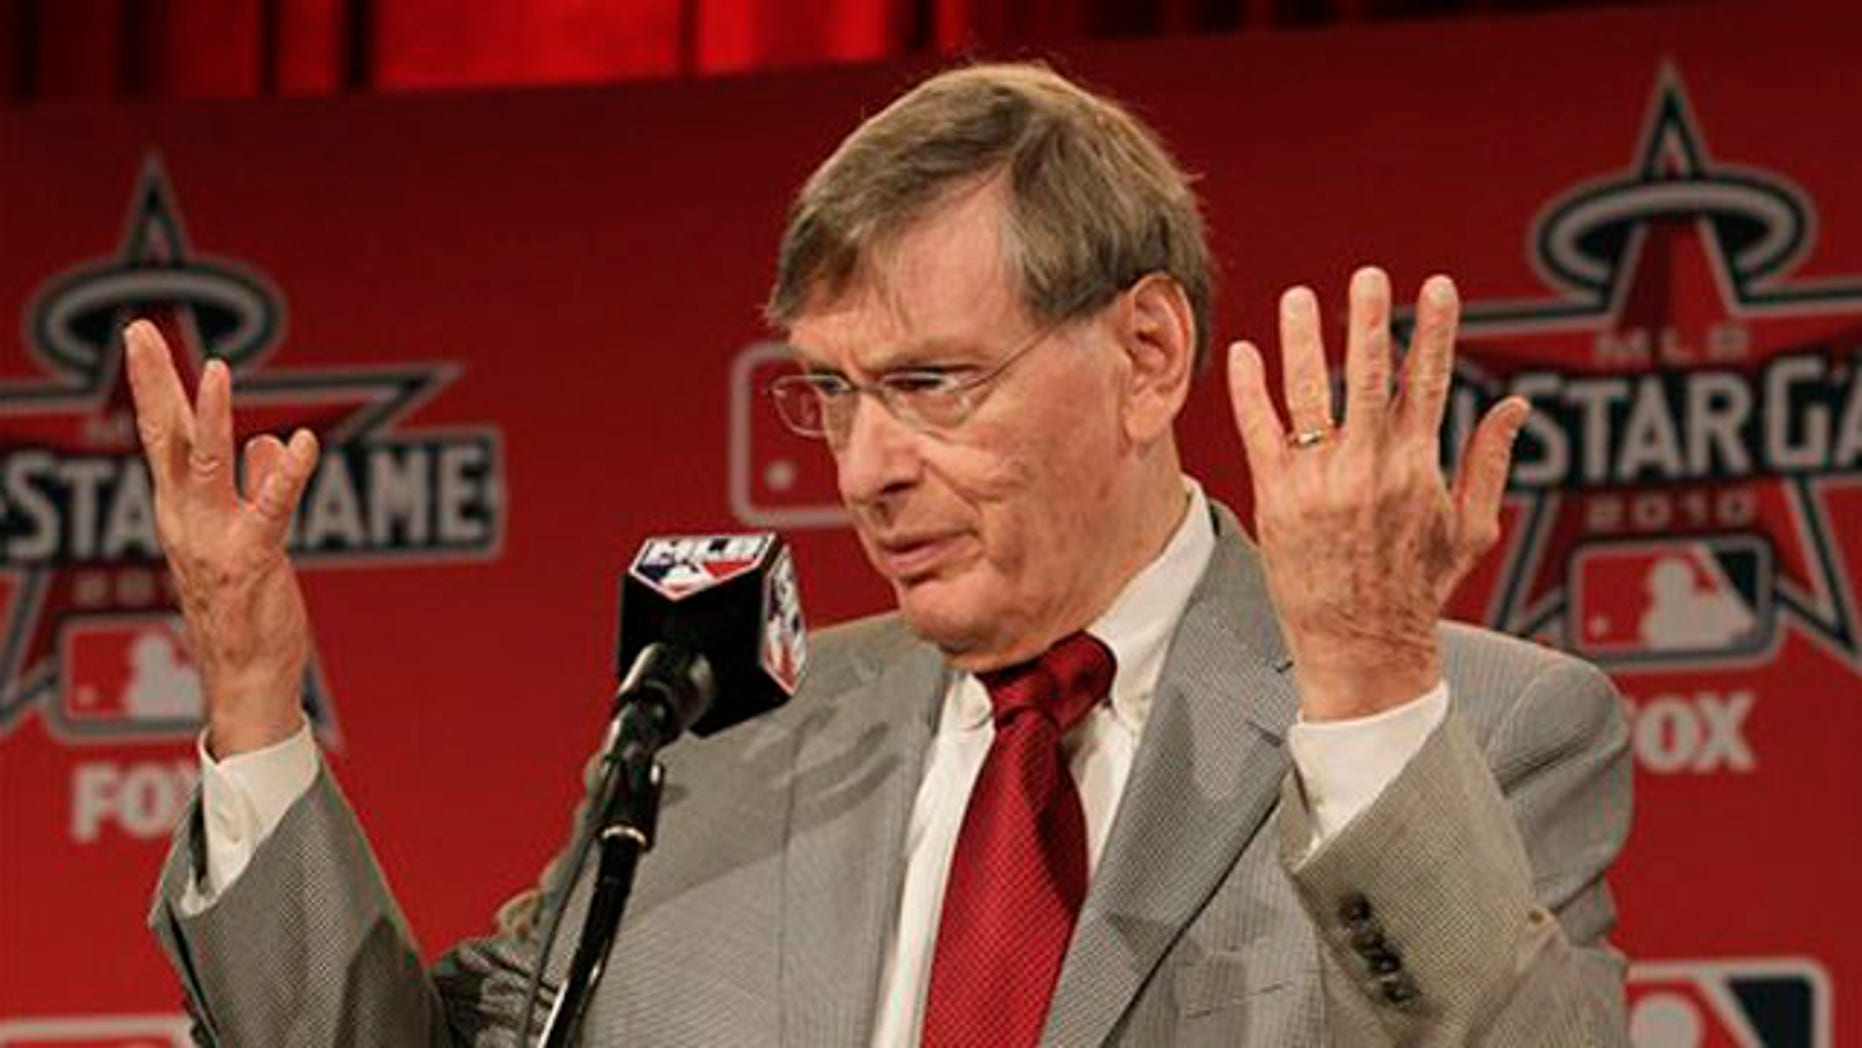 Major League Baseball Commissioner Bud Selig speaks at a press conference before All-Star festivities July 12 in Anaheim, Calif. (AP Photo)